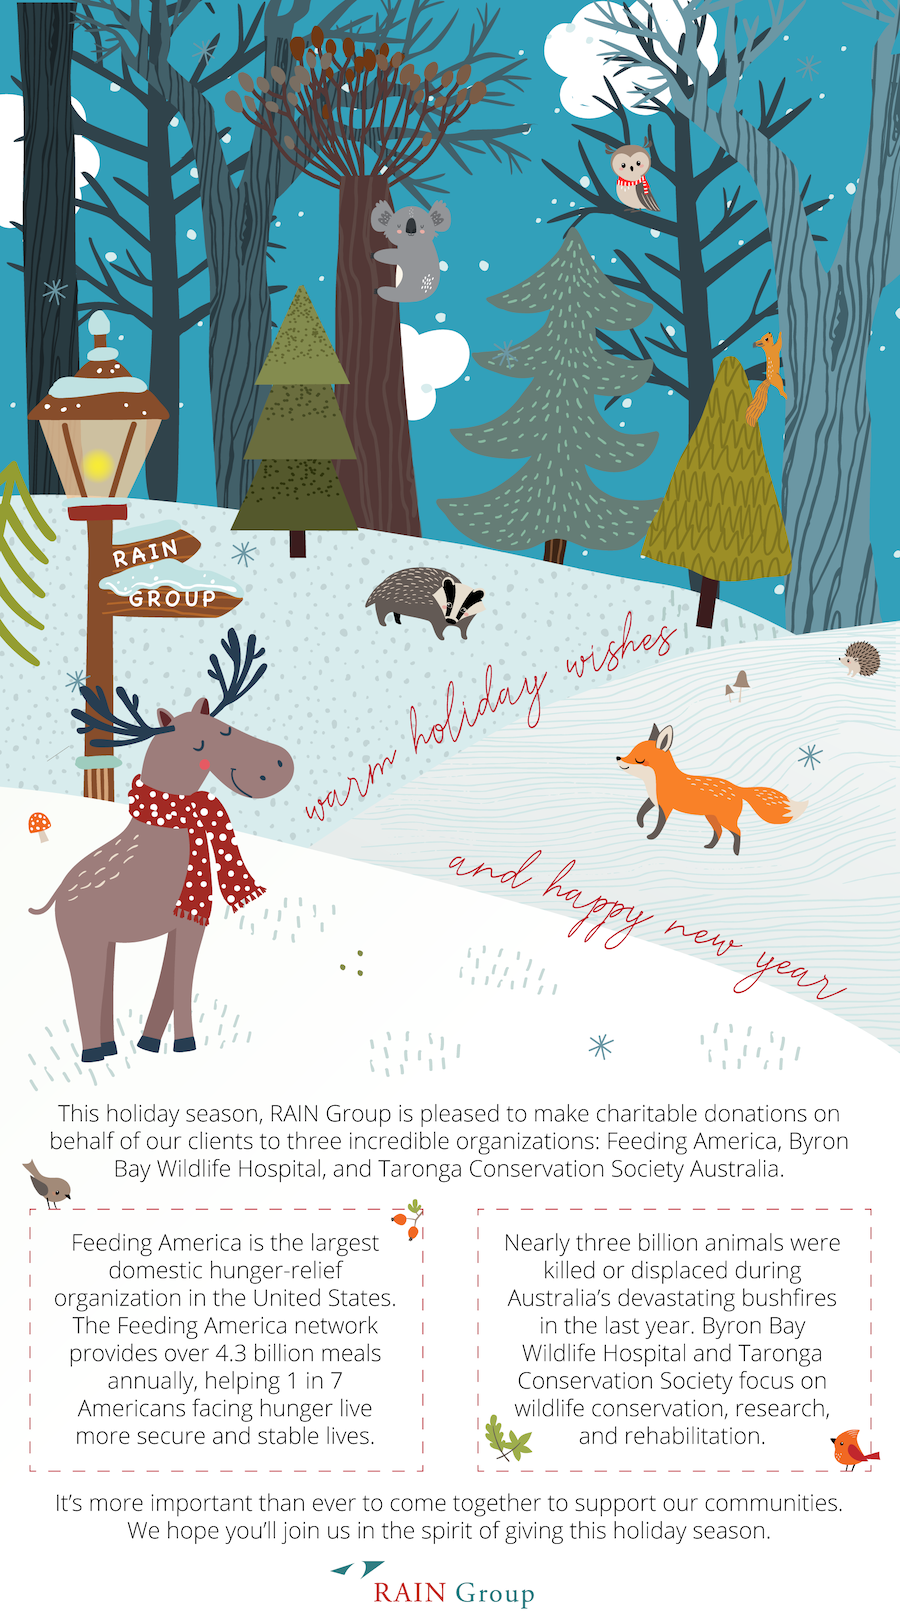 Warm Holiday Wishes & Happy New Year from RAIN Group